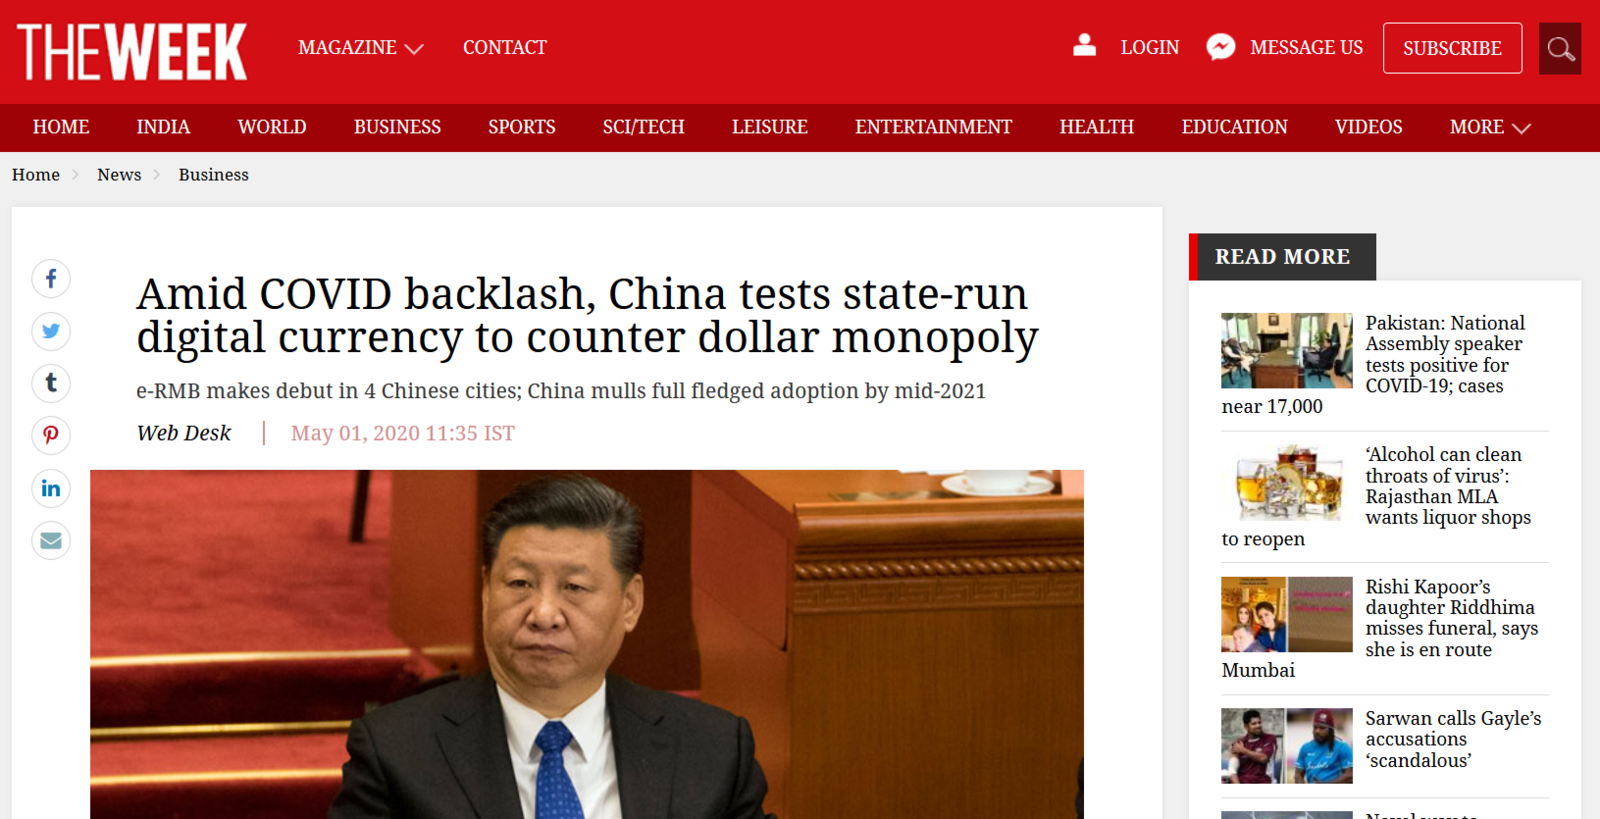 https://www.theweek.in/news/biz-tech/2020/05/01/amid-covid-backlash-china-tests-state-run-digital-currency-to-counter-dollar-monopoly.html